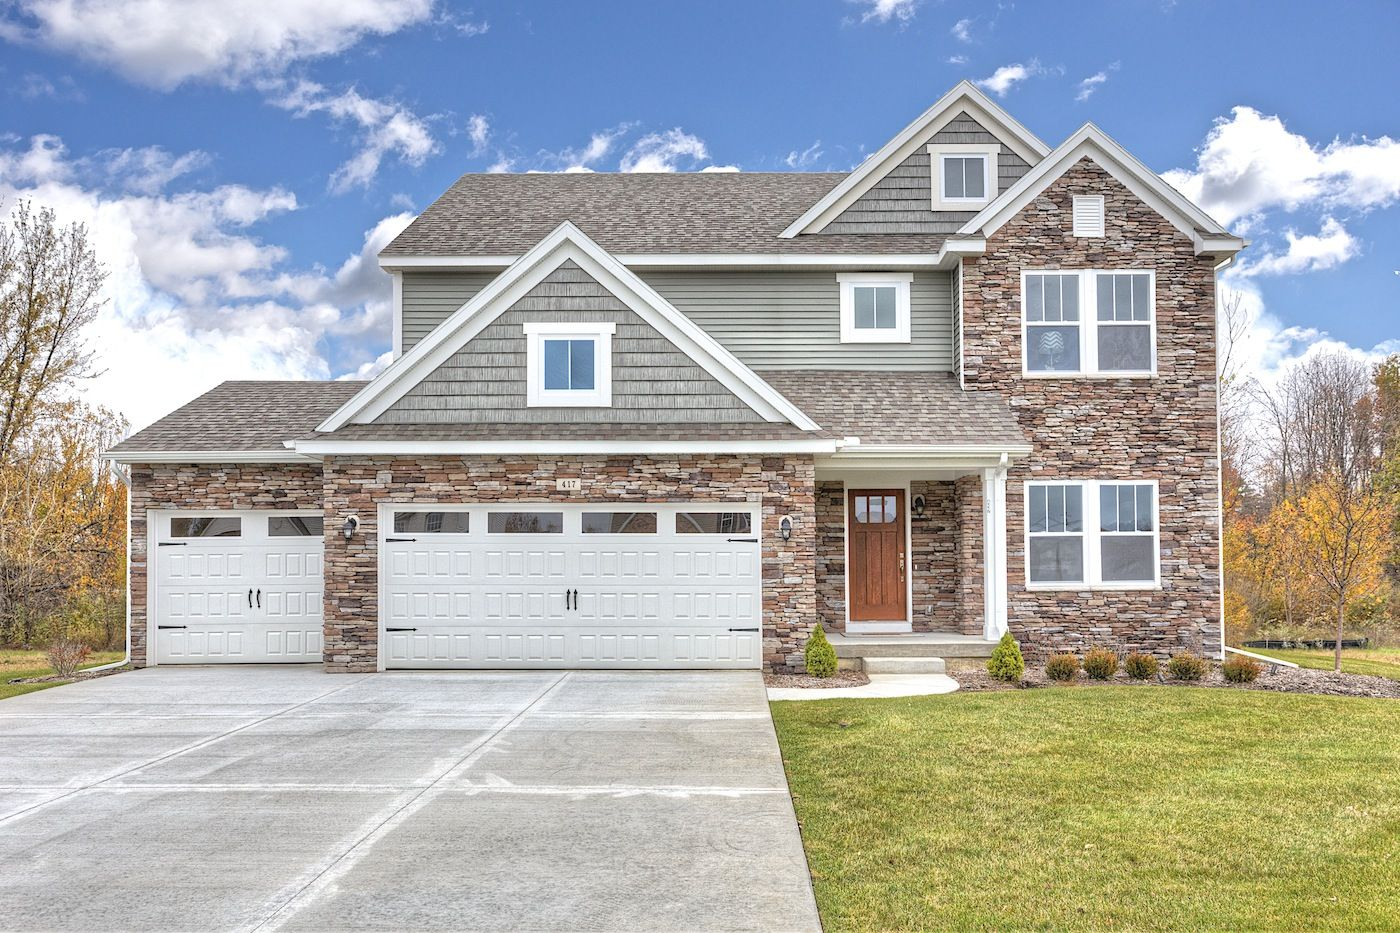 Exterior featured in the Traditions 2200 V8.0b By Allen Edwin Homes in Flint, MI